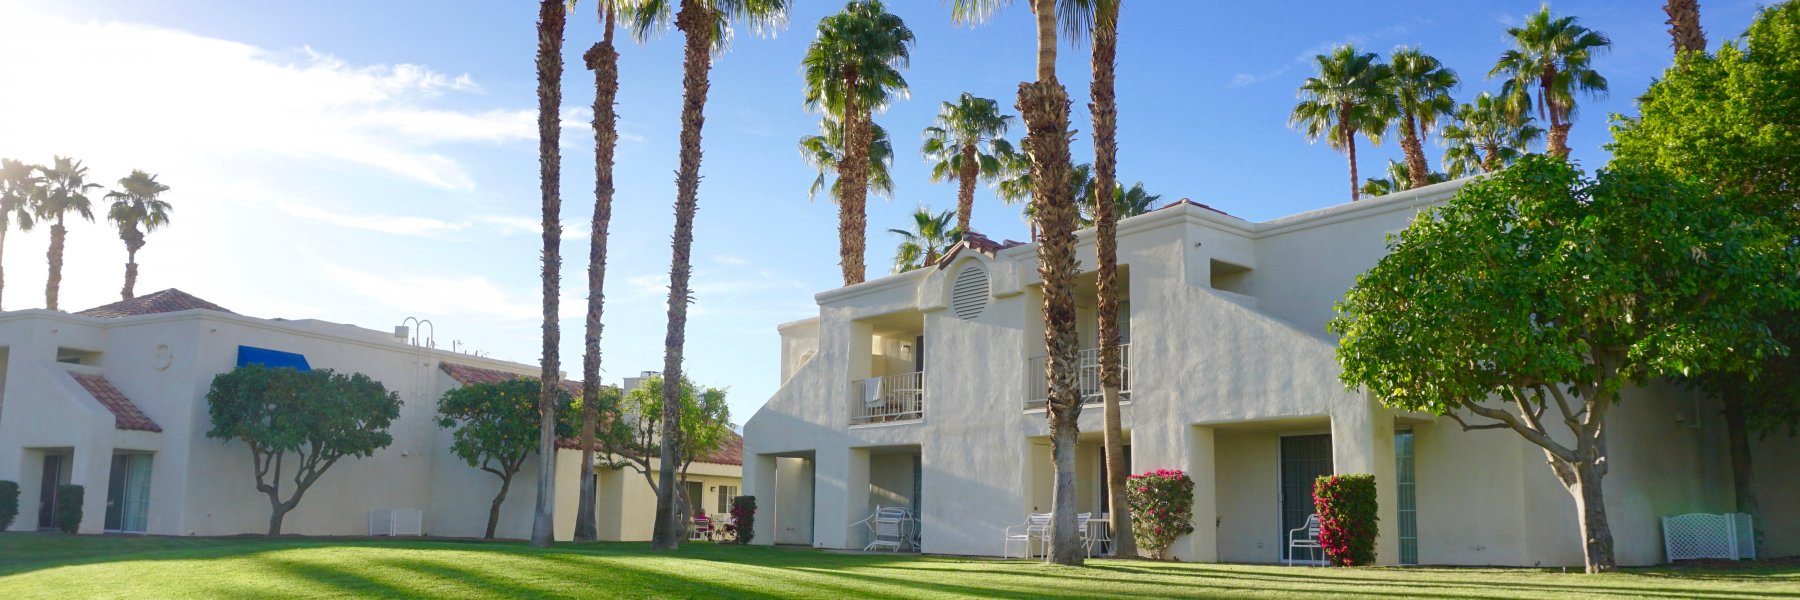 Desert Breezes is a community of condos in Palm Desert California